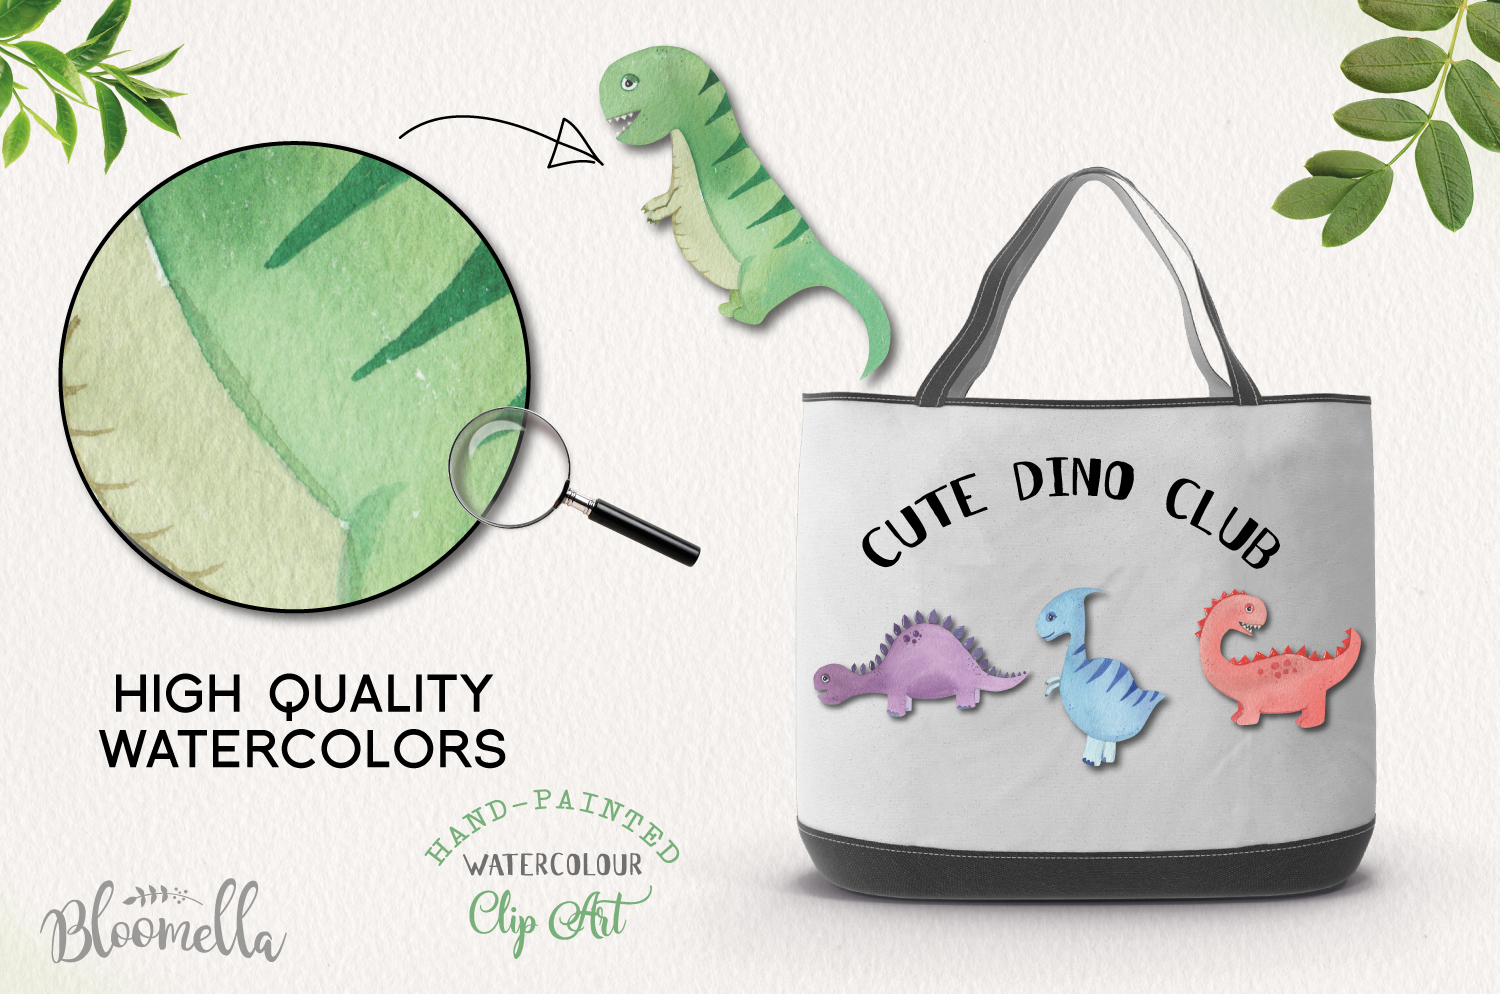 Cute Dinosaur 11 Hand Painted Watercolor Dino Eggs Trex example image 2